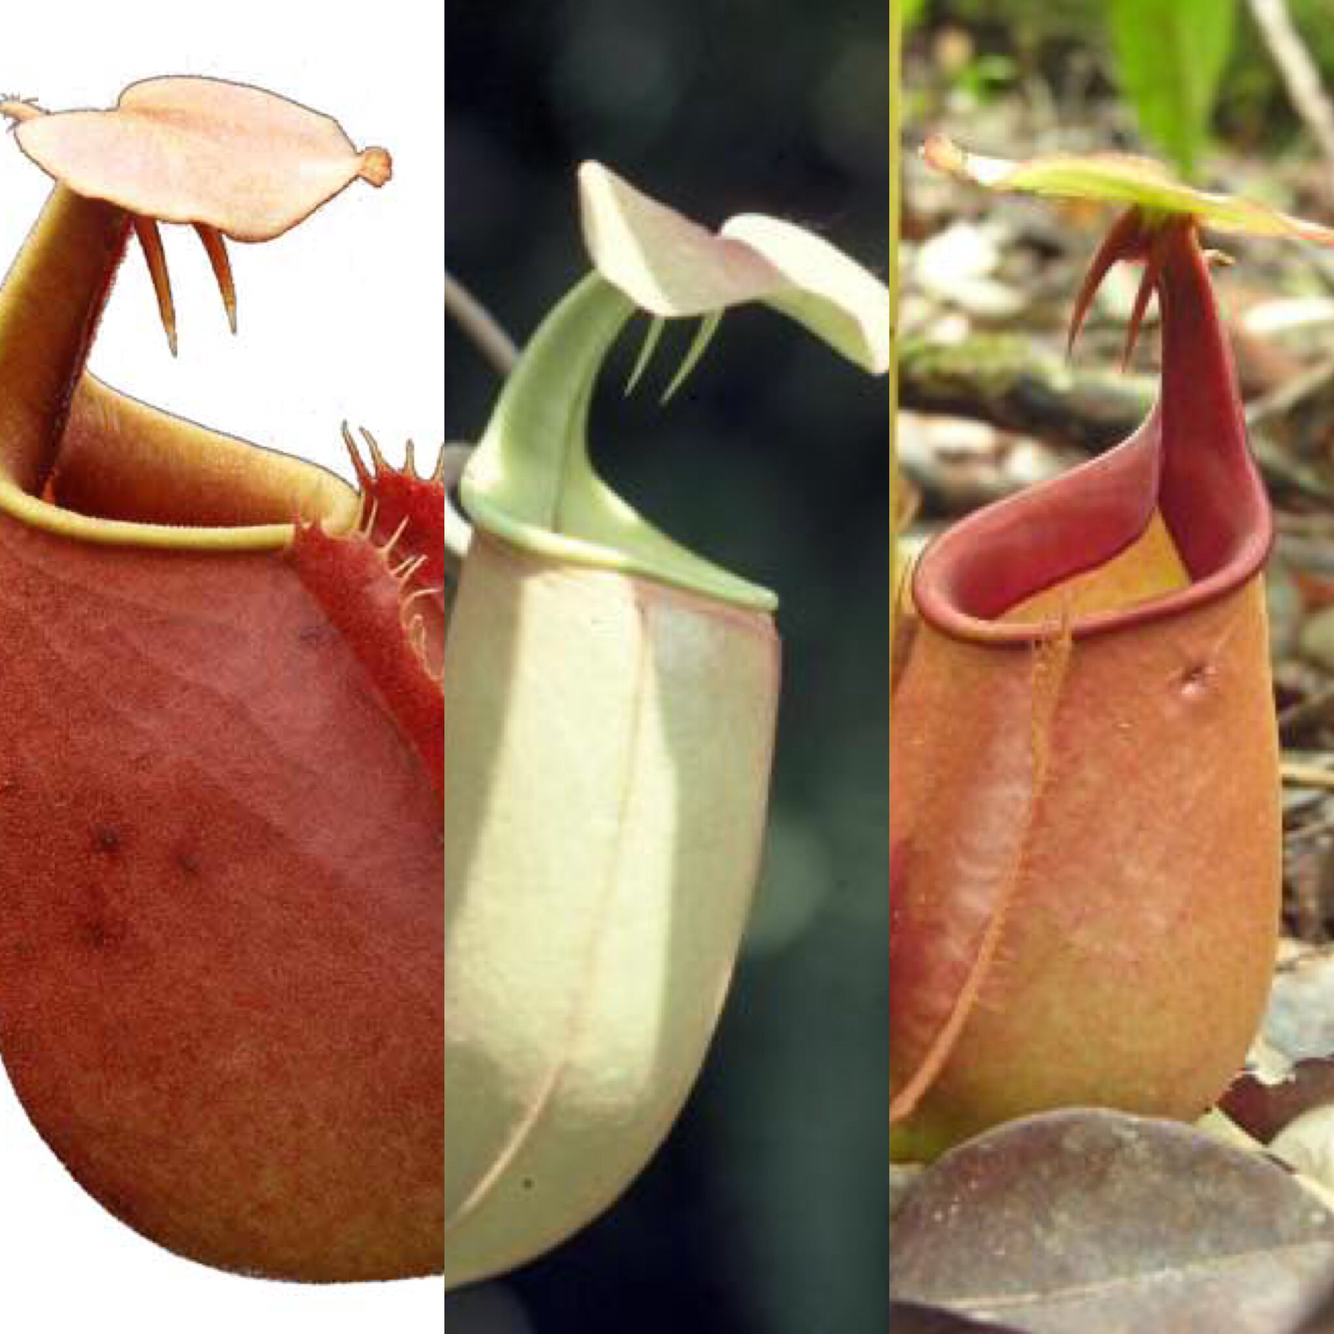 Nepenthes bicalcarata Starter Pack 2.0